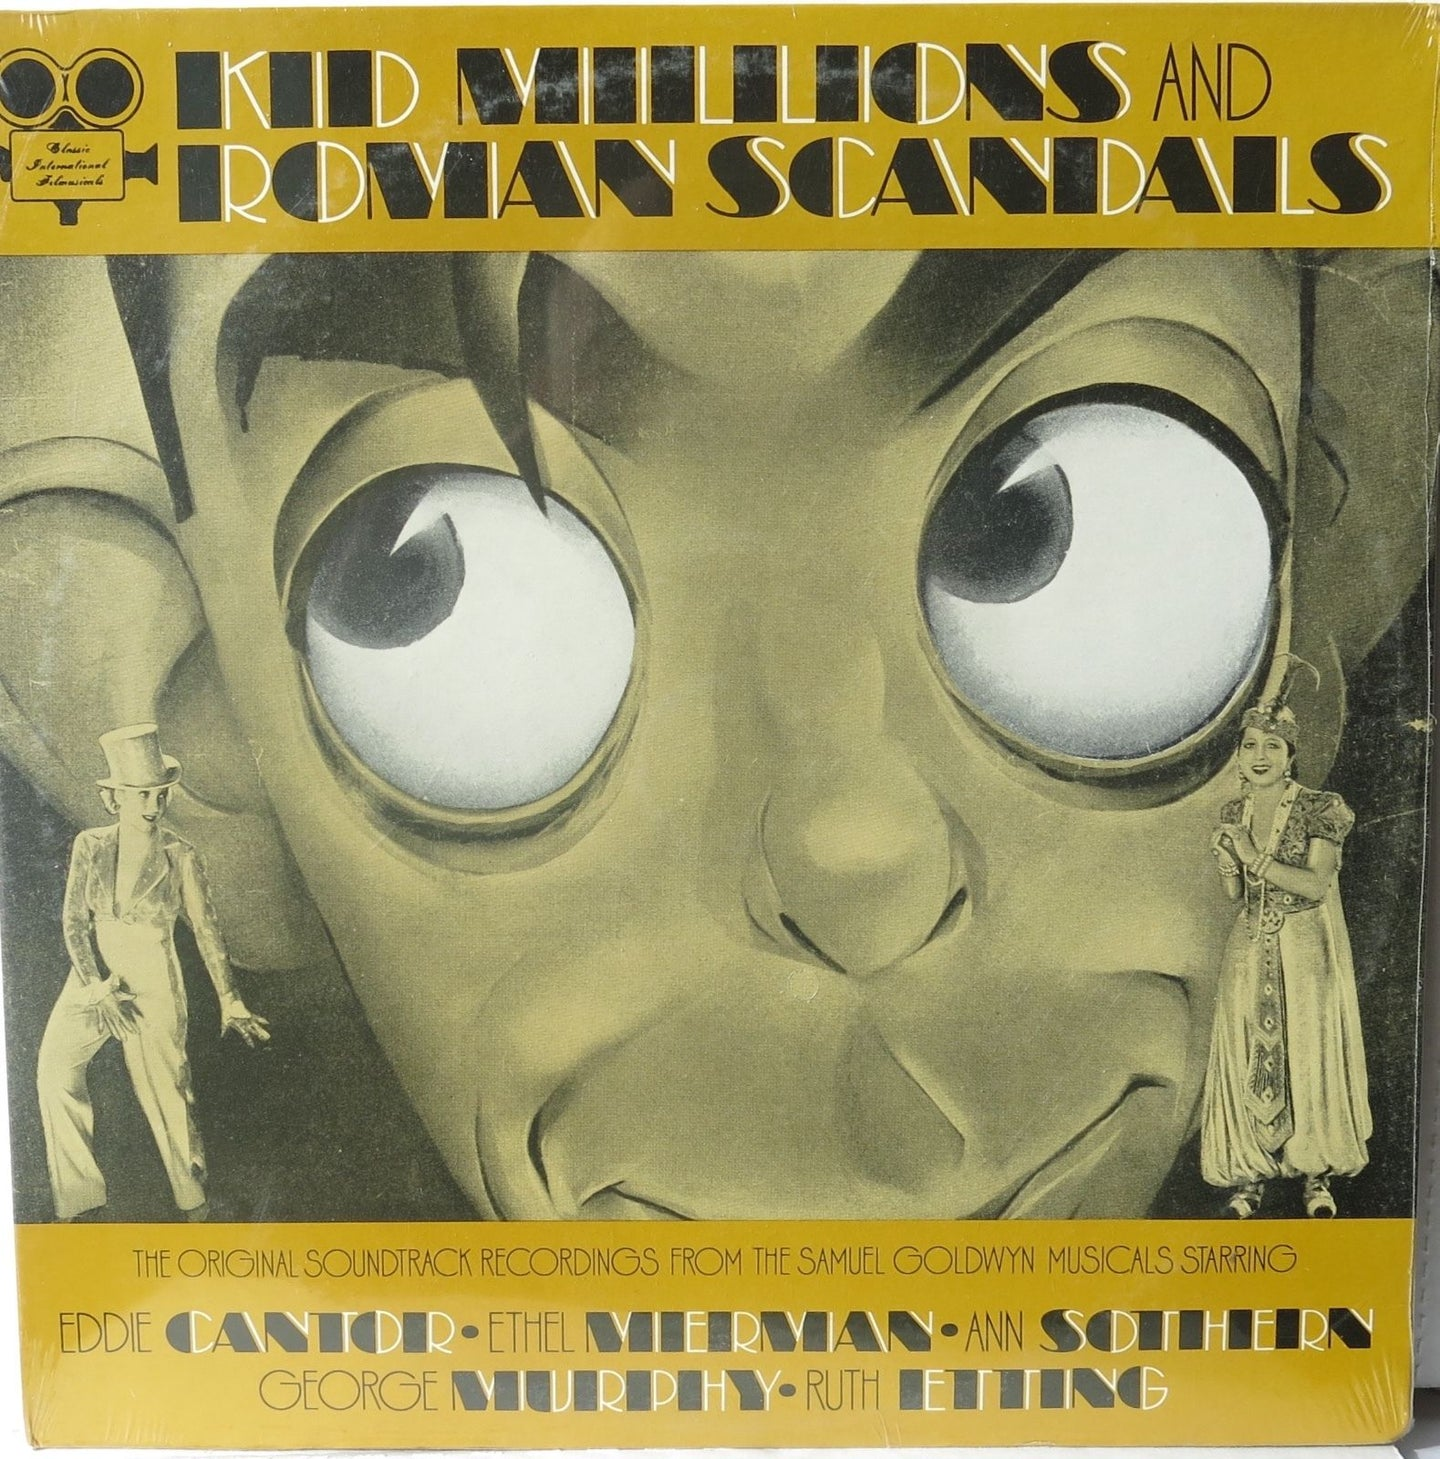 Kid Millions - Roman Scandals Soundtracks - Friedman & Sons